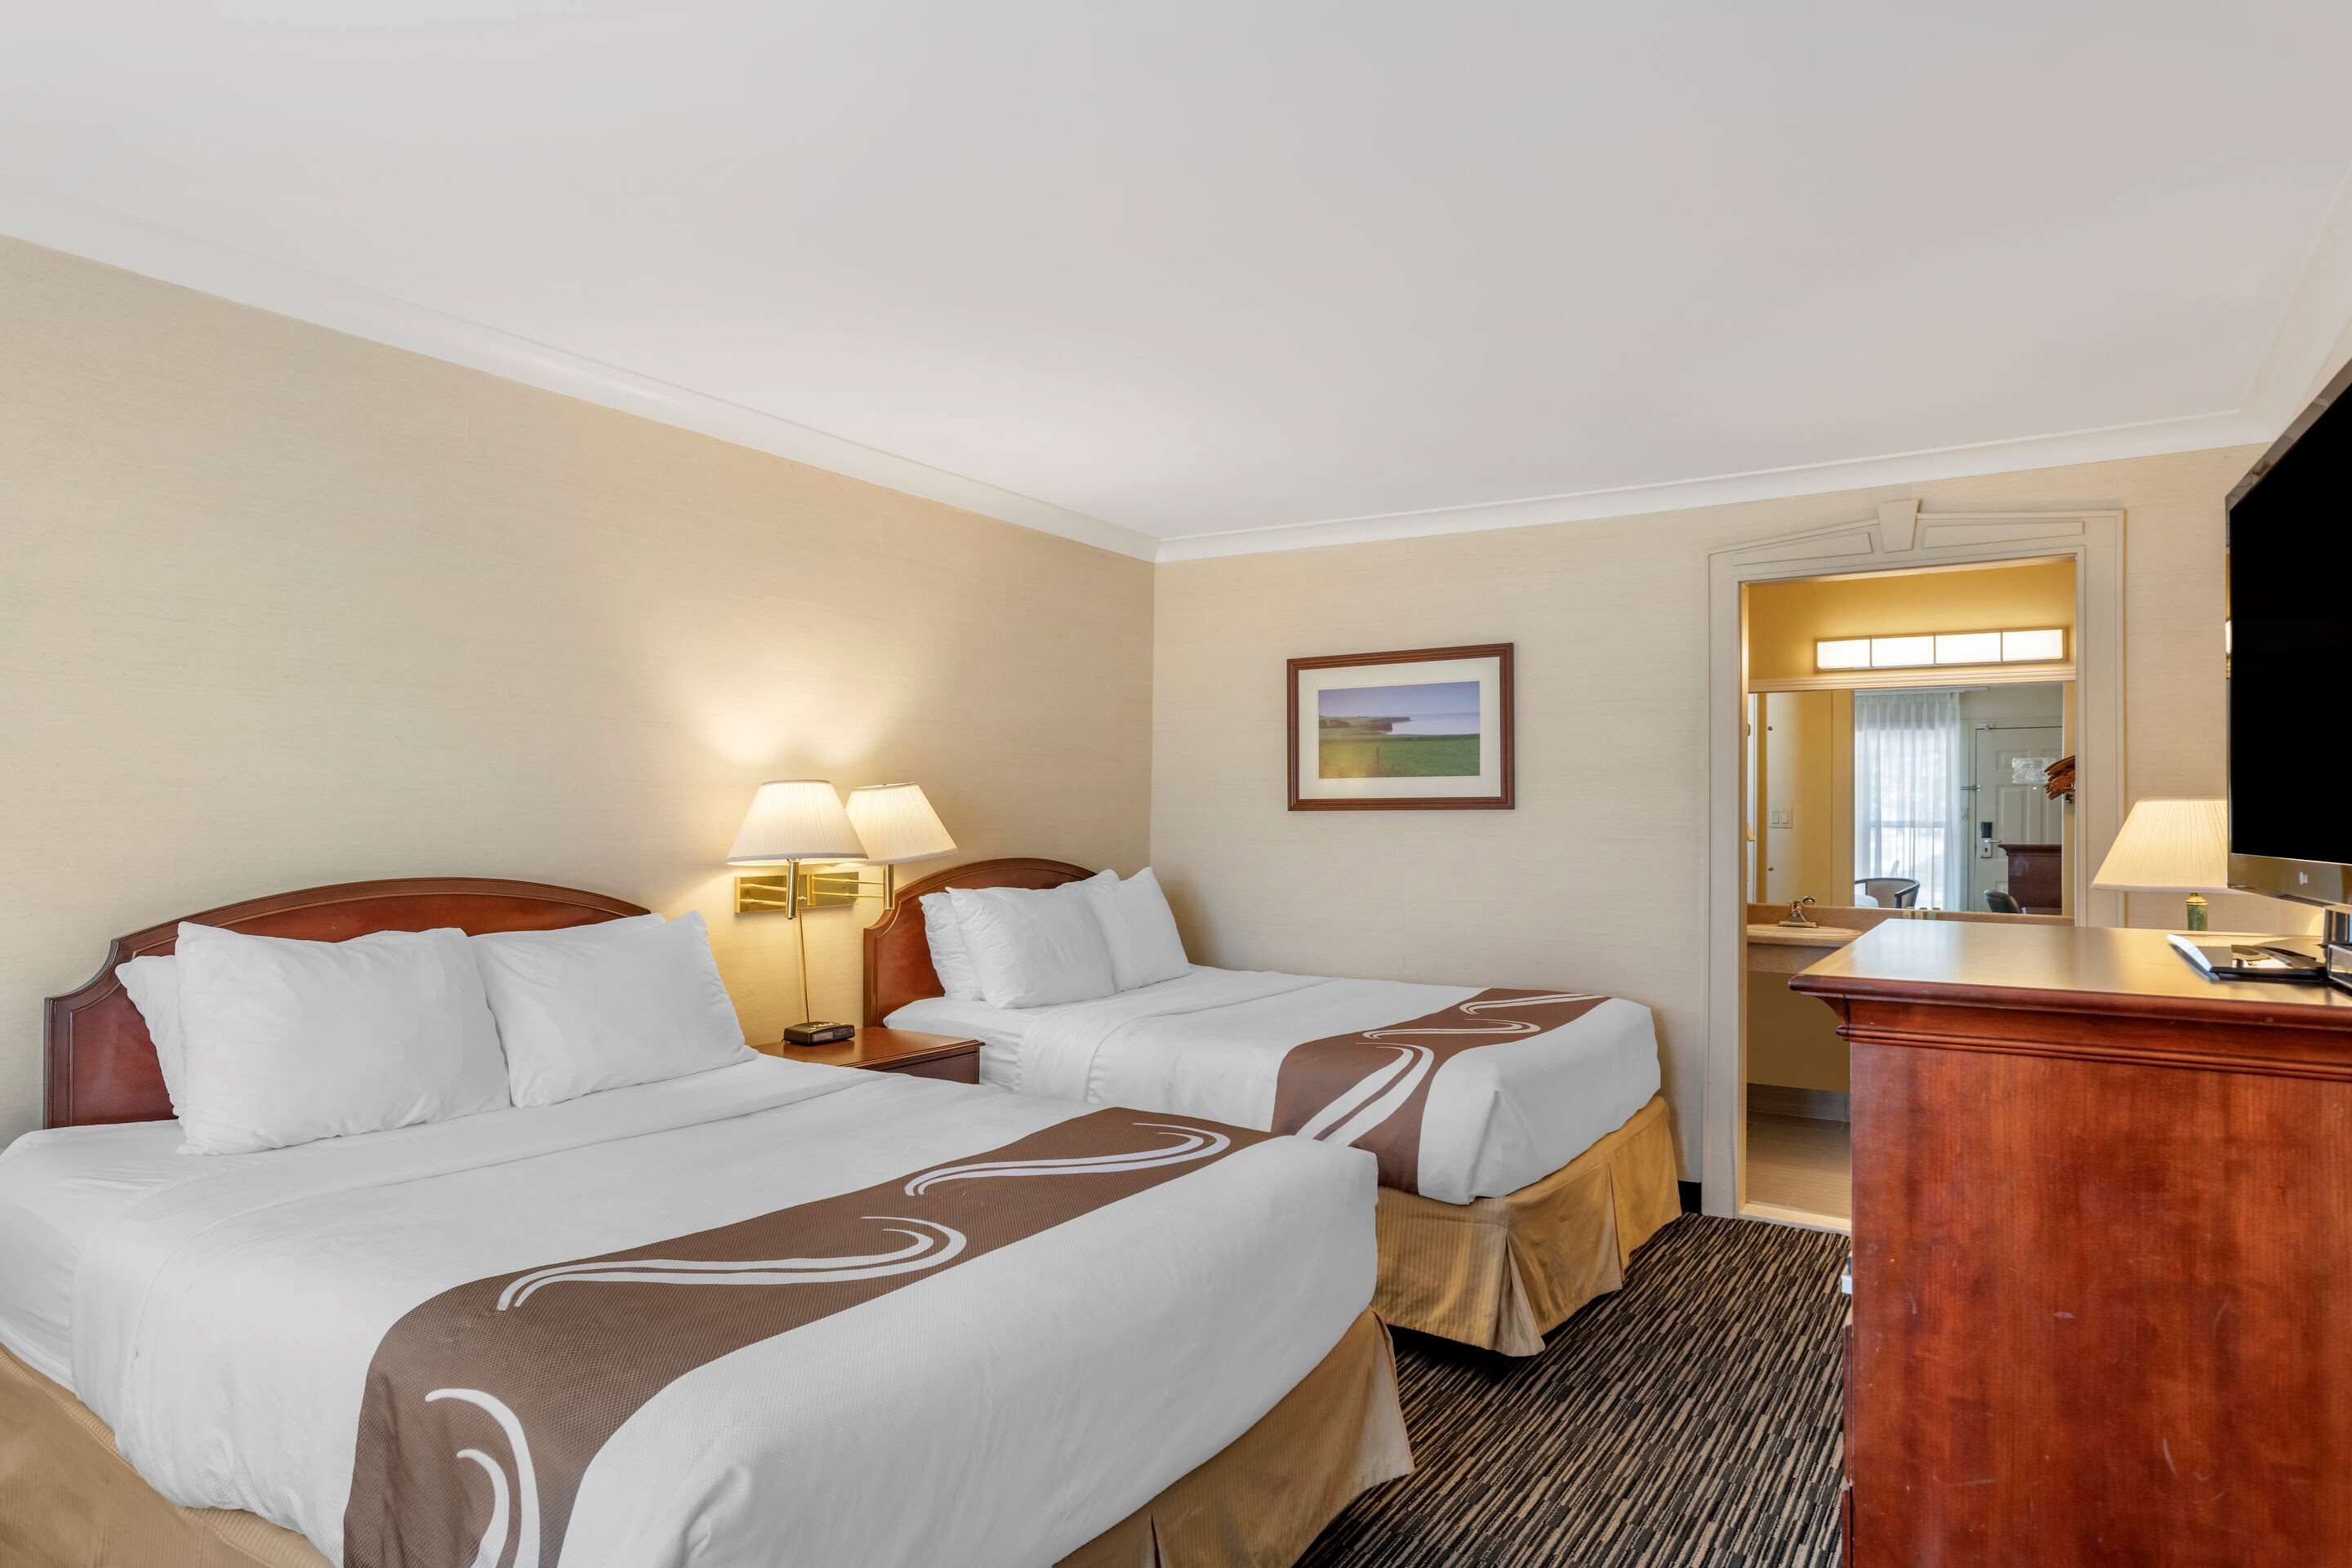 Quality Inn & Suites Garden Of The Gulf in Summerside: Guest room with two beds